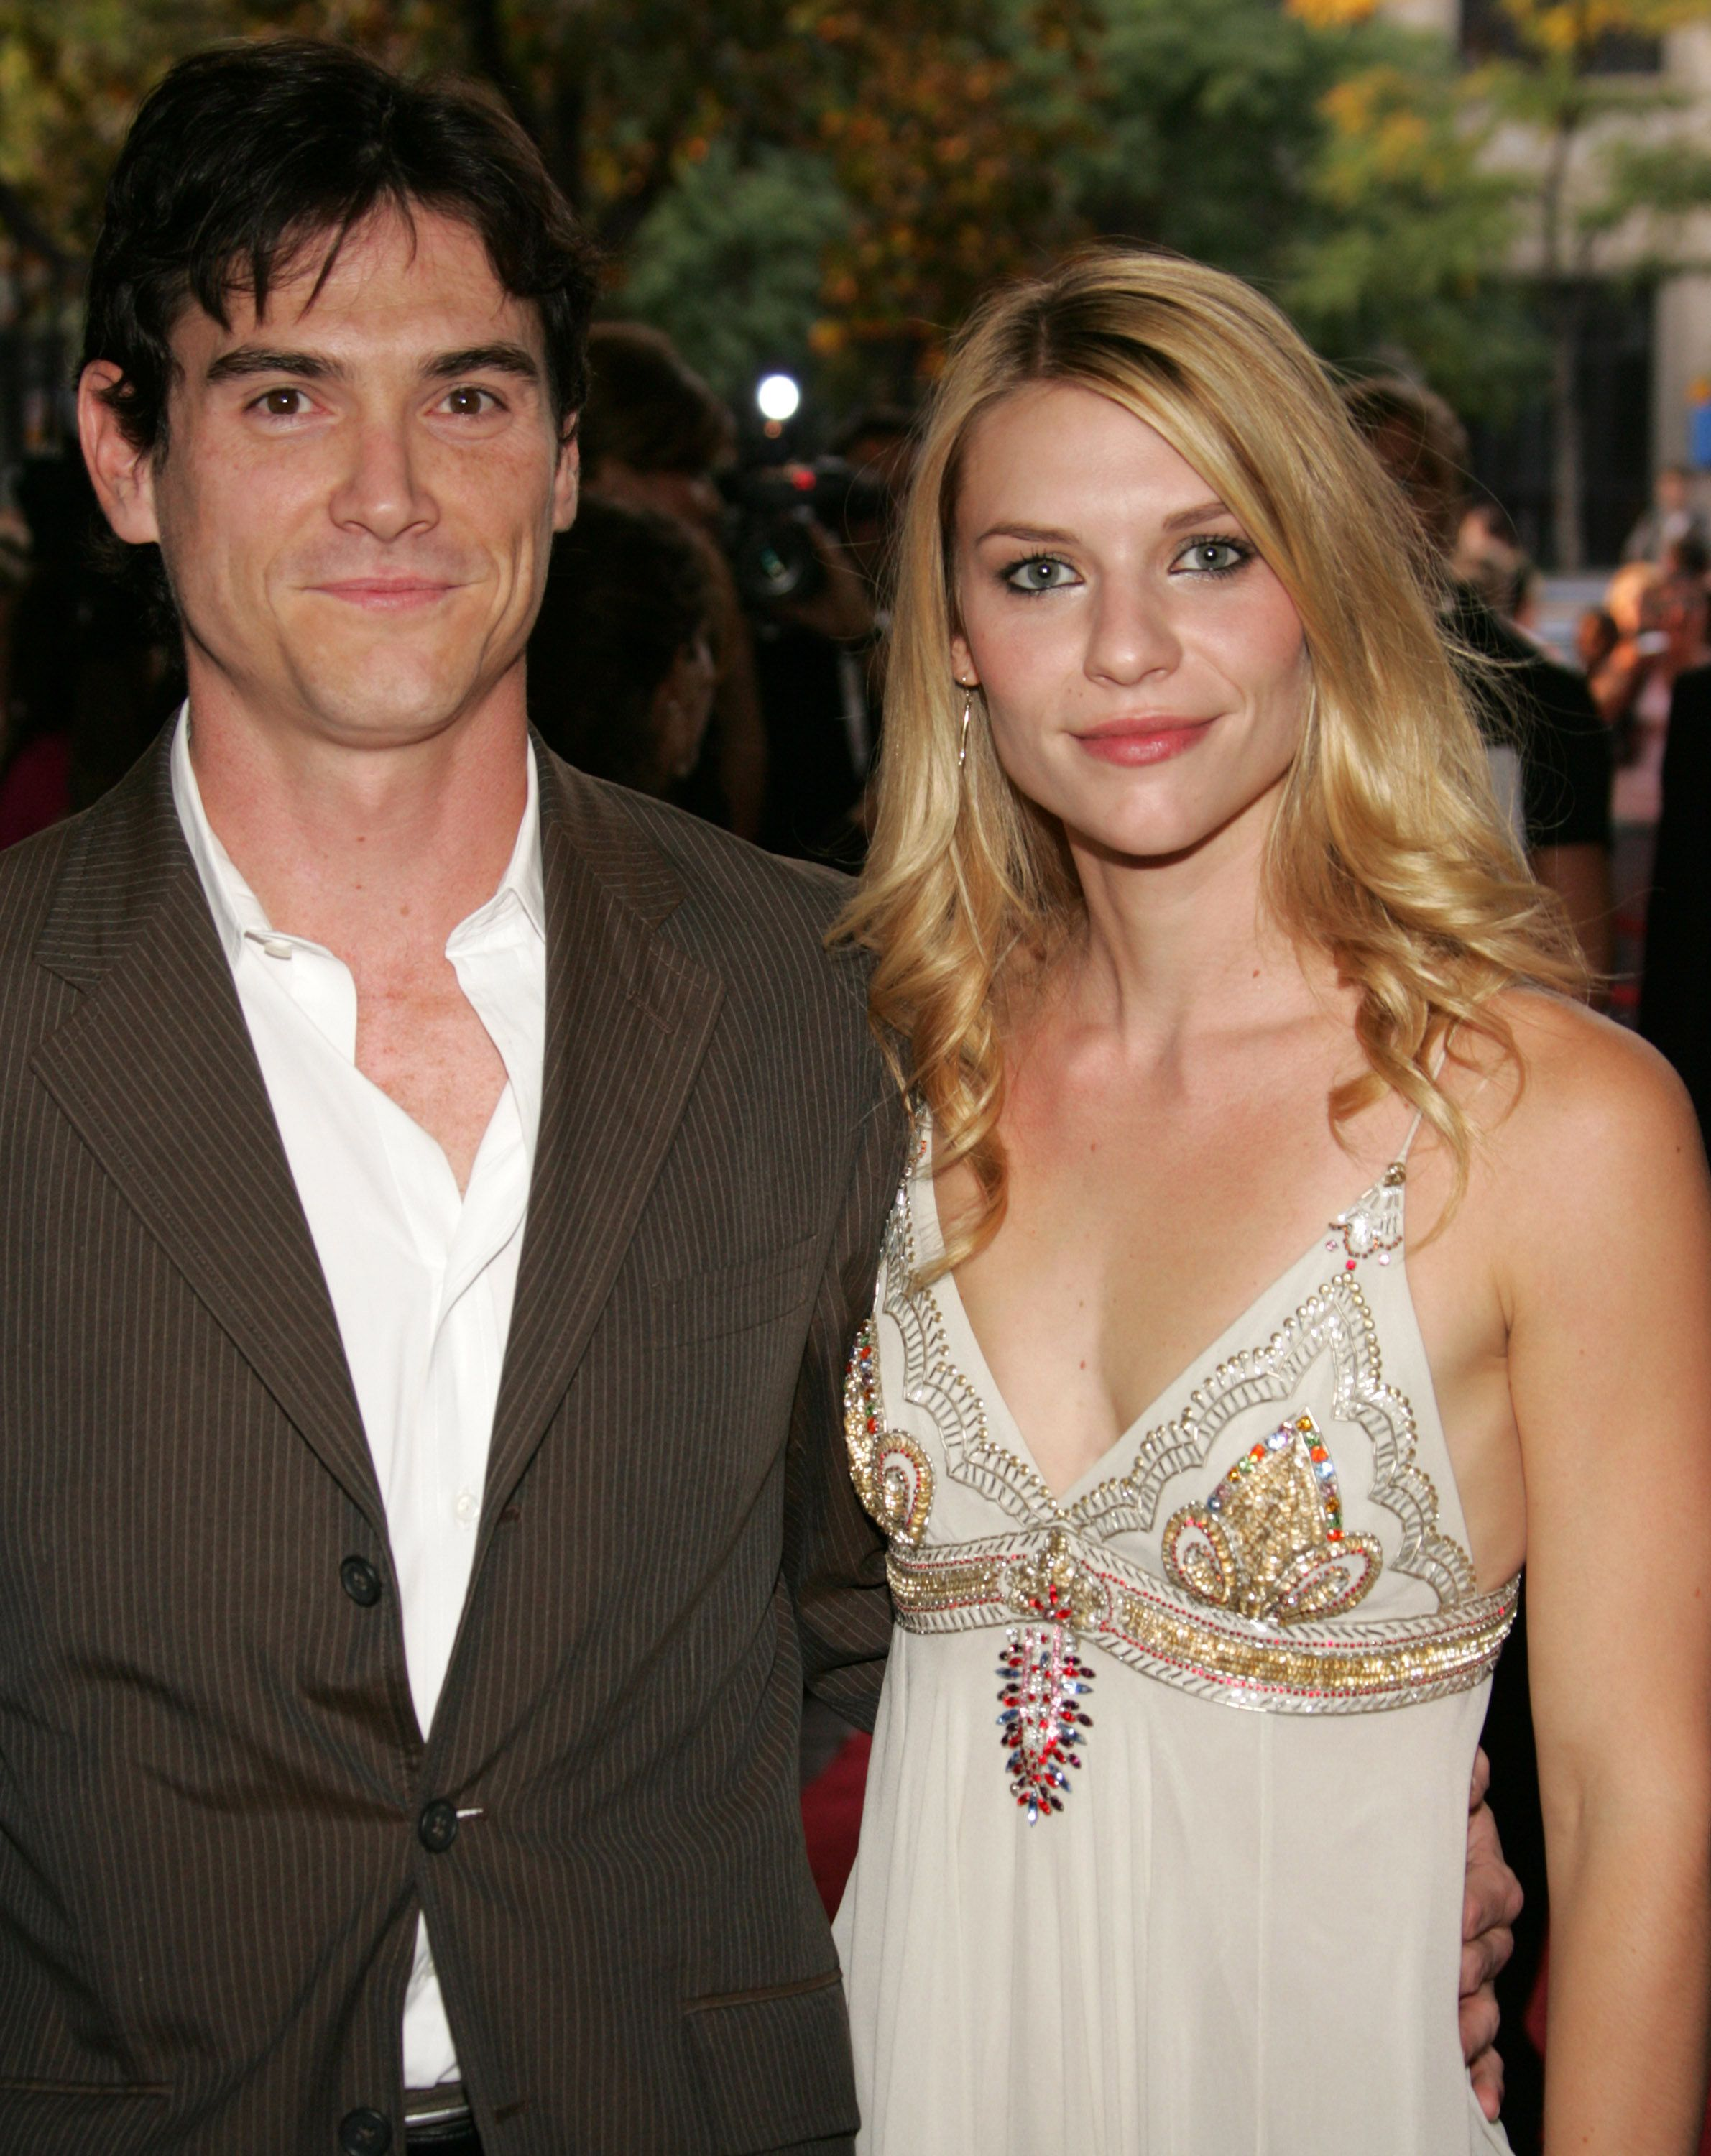 Billy Crudup and Claire Danes at the 43 Gerrard St. East in Toronto, Canada. (Photo by John Shearer/WireImage)